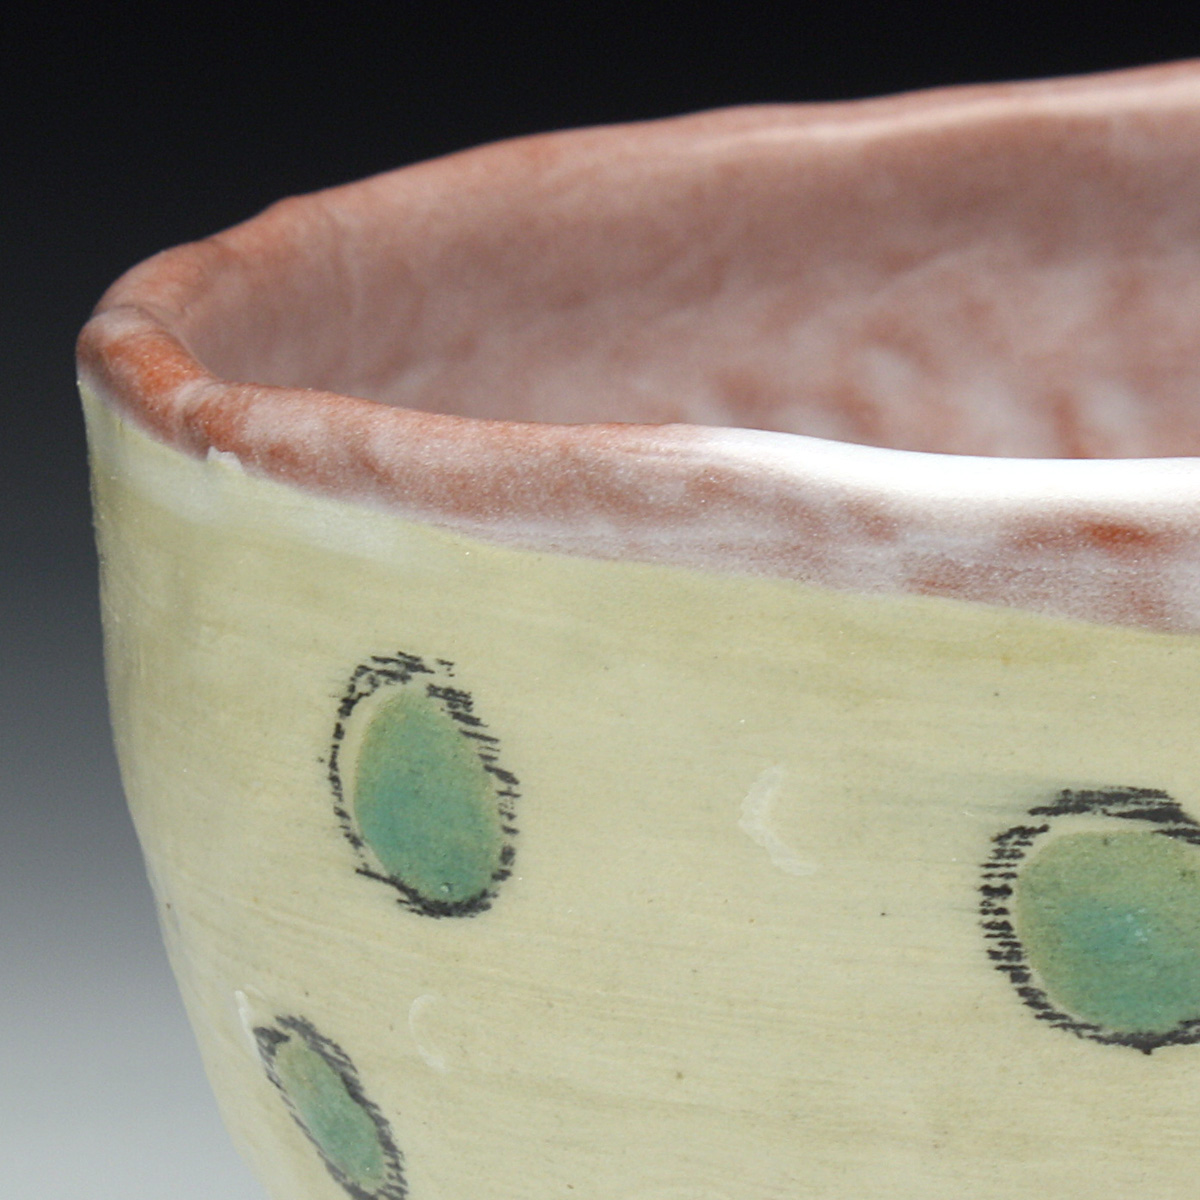 cereal bowl detail a.JPG